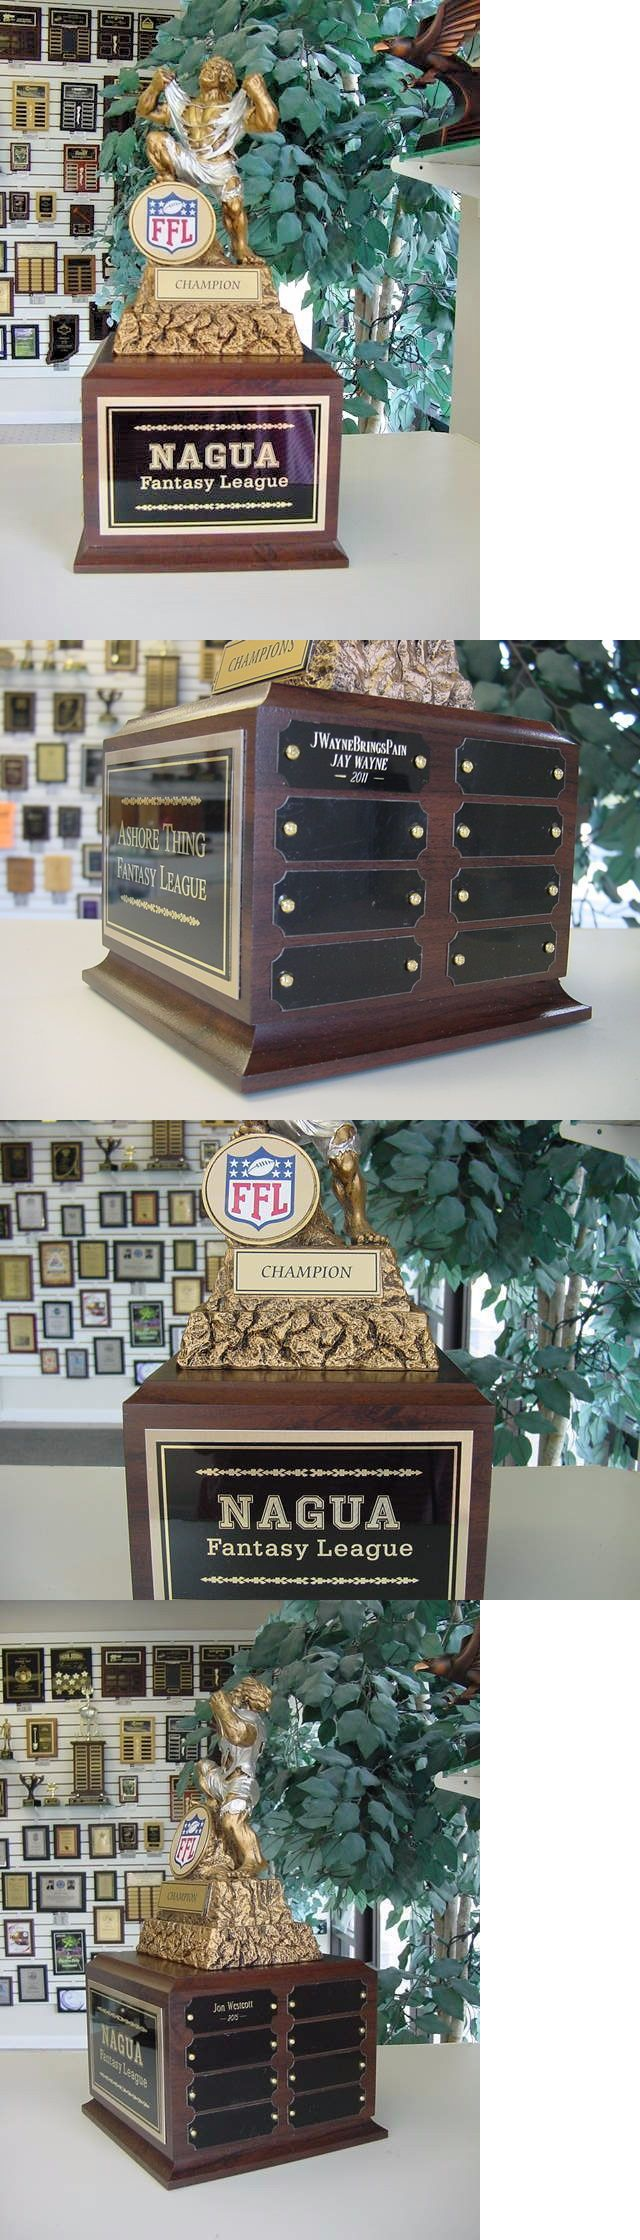 Other Football 2024: Fantasy Football Perpetual Trophy 16 Y Ffl Monster New Color Ffl Logo With Riser -> BUY IT NOW ONLY: $69.85 on eBay!